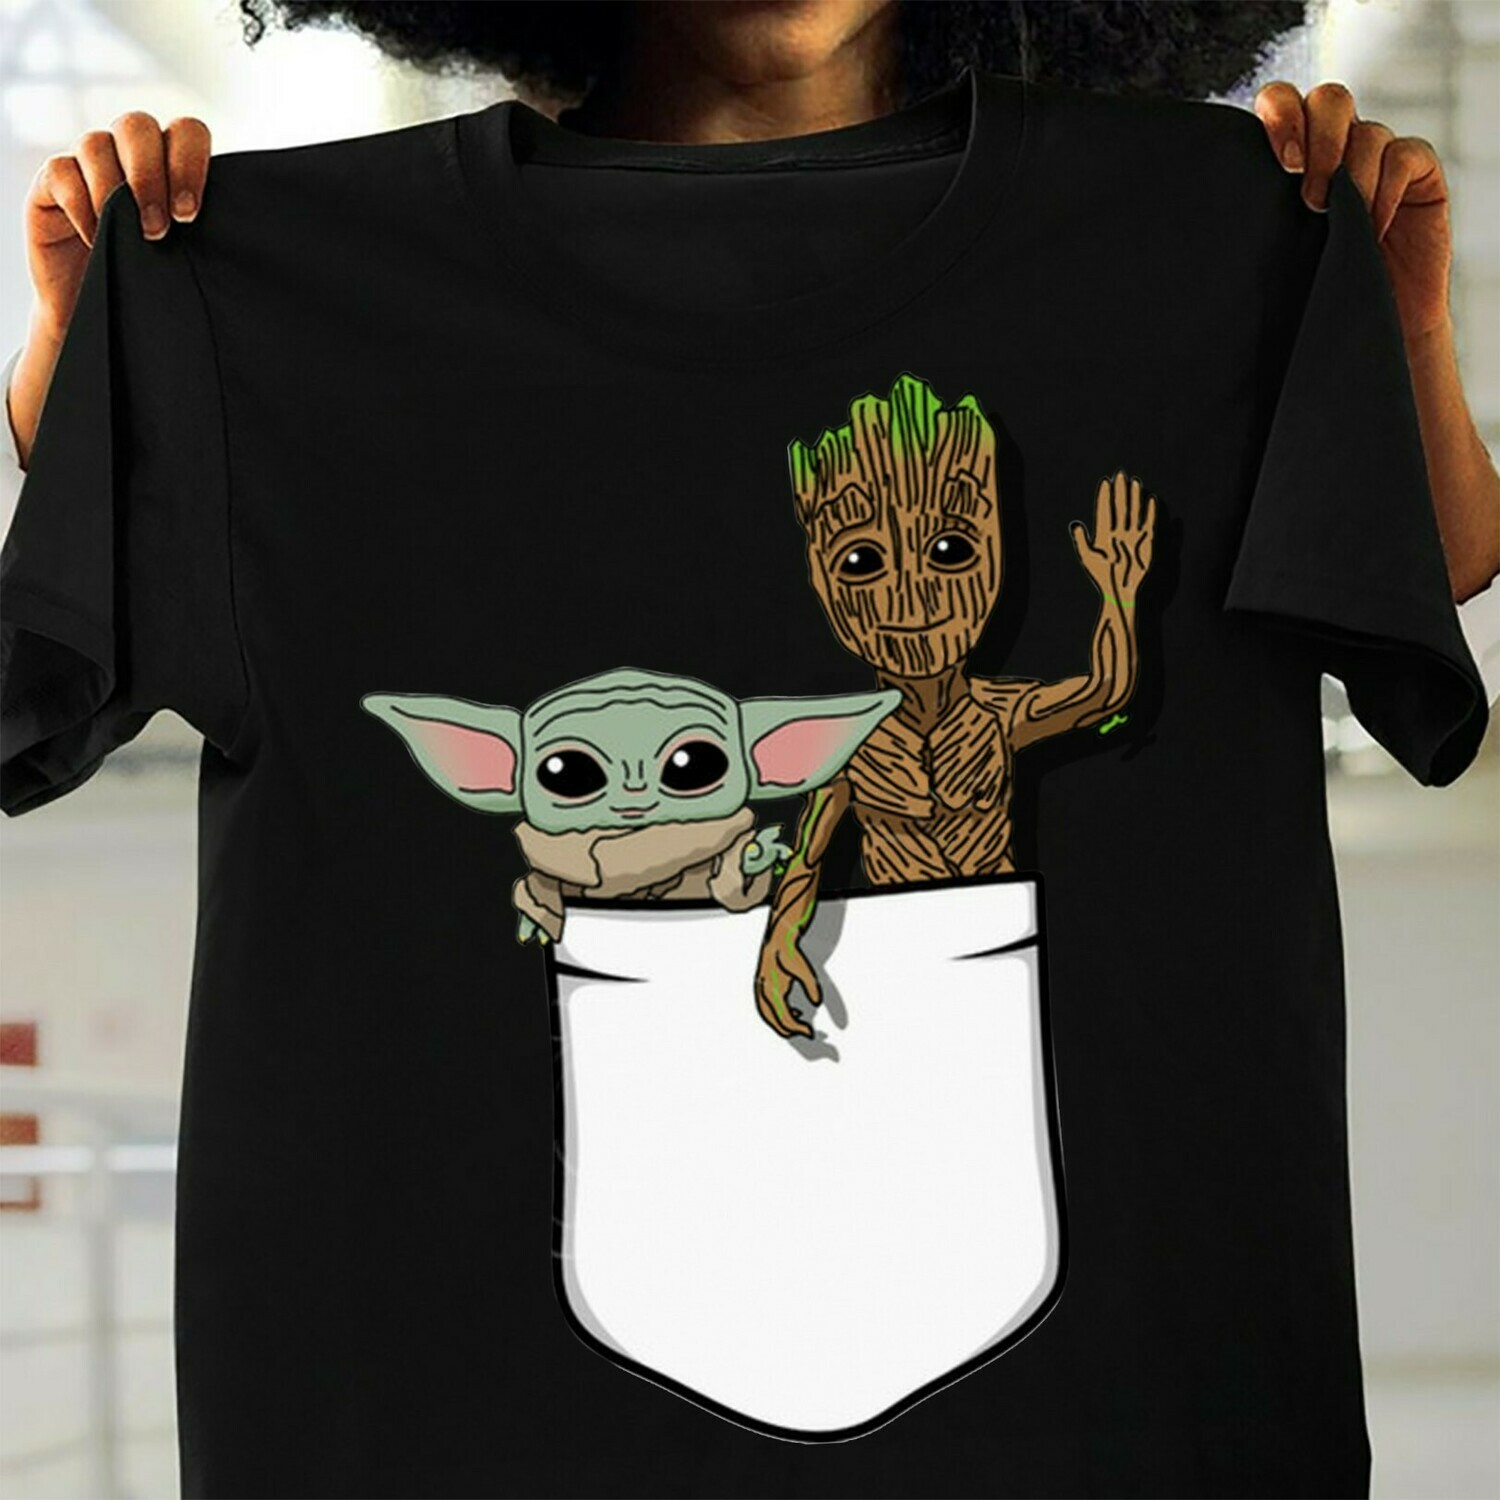 The Mandalorian with death Star Wars Movie The Rise of Skywalker Movie Memes Baby Yoda and Groot Pocket  T-Shirt Hoodie Sweatshirt Sweater Tee Kids Youth Gifts Jolly Family Gifts